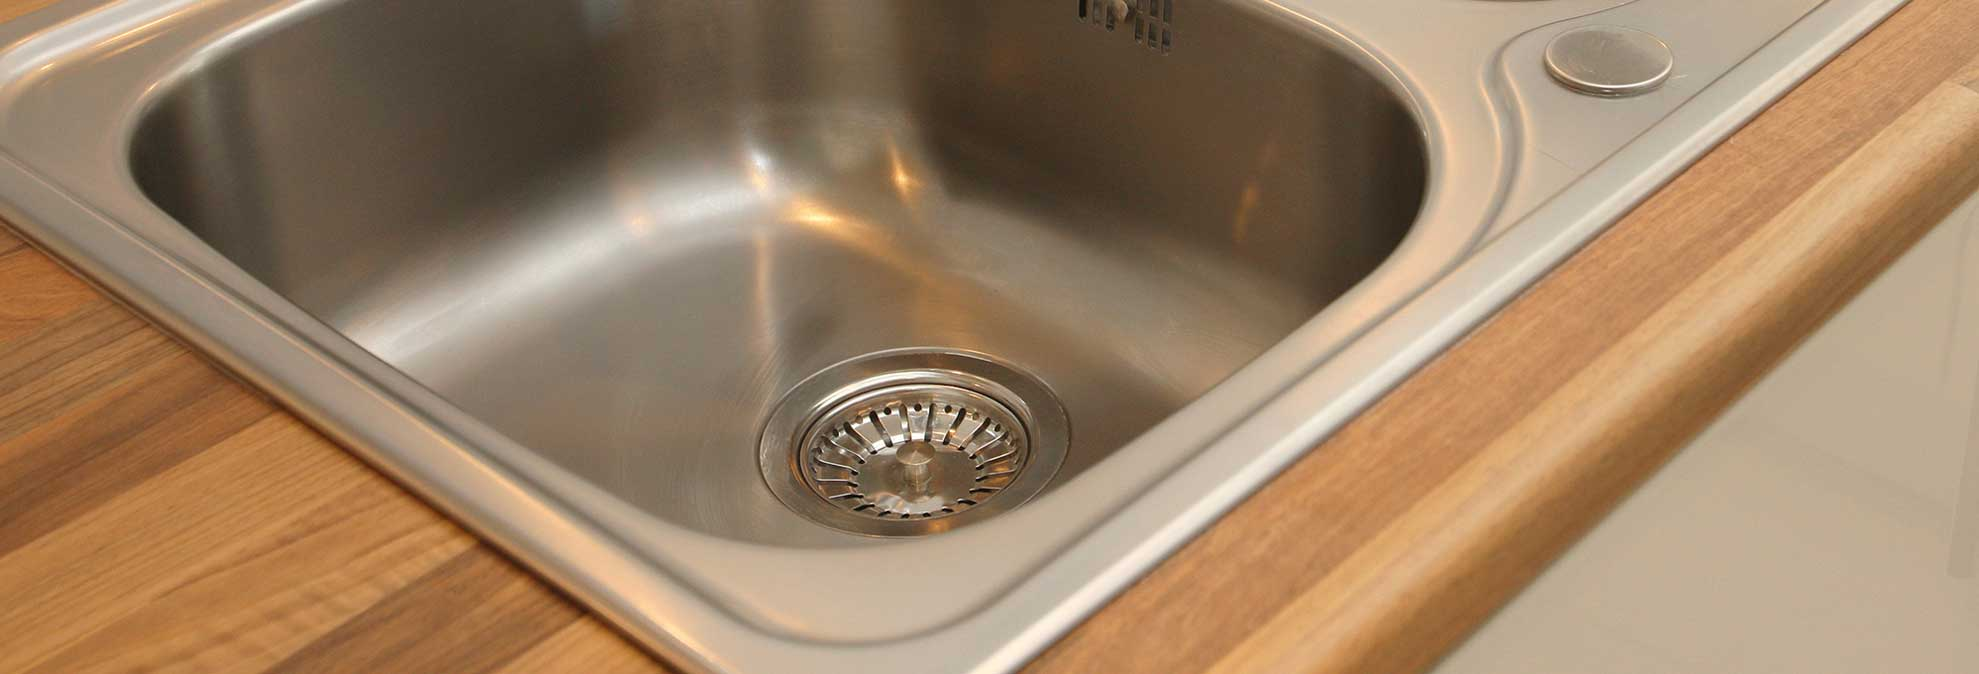 sink for kitchen hanging lights best buying guide consumer reports